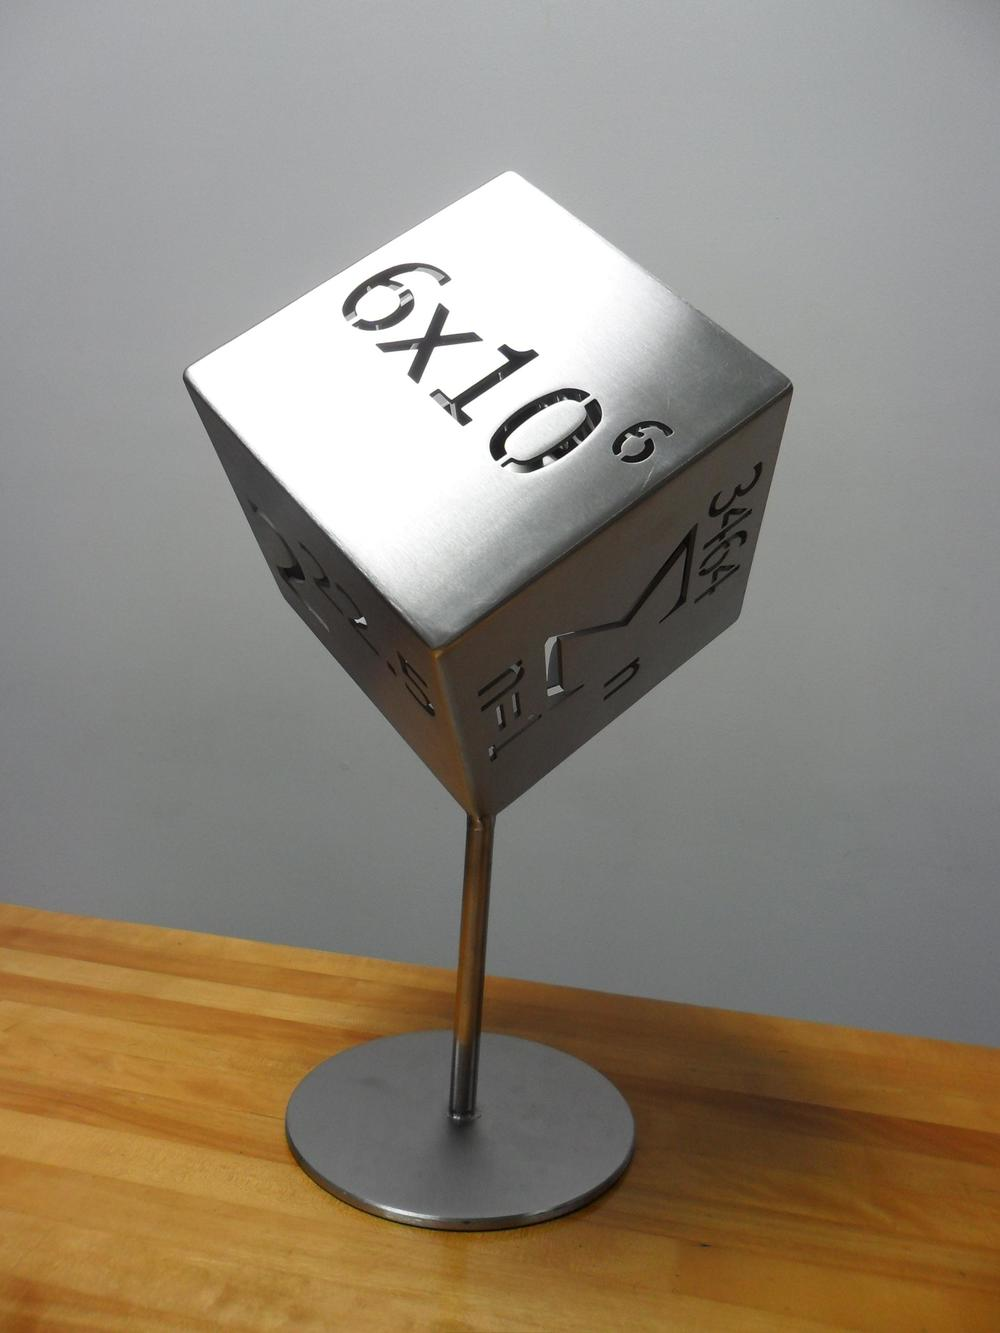 STAINLESS STEEL CUBE SCULPTURE